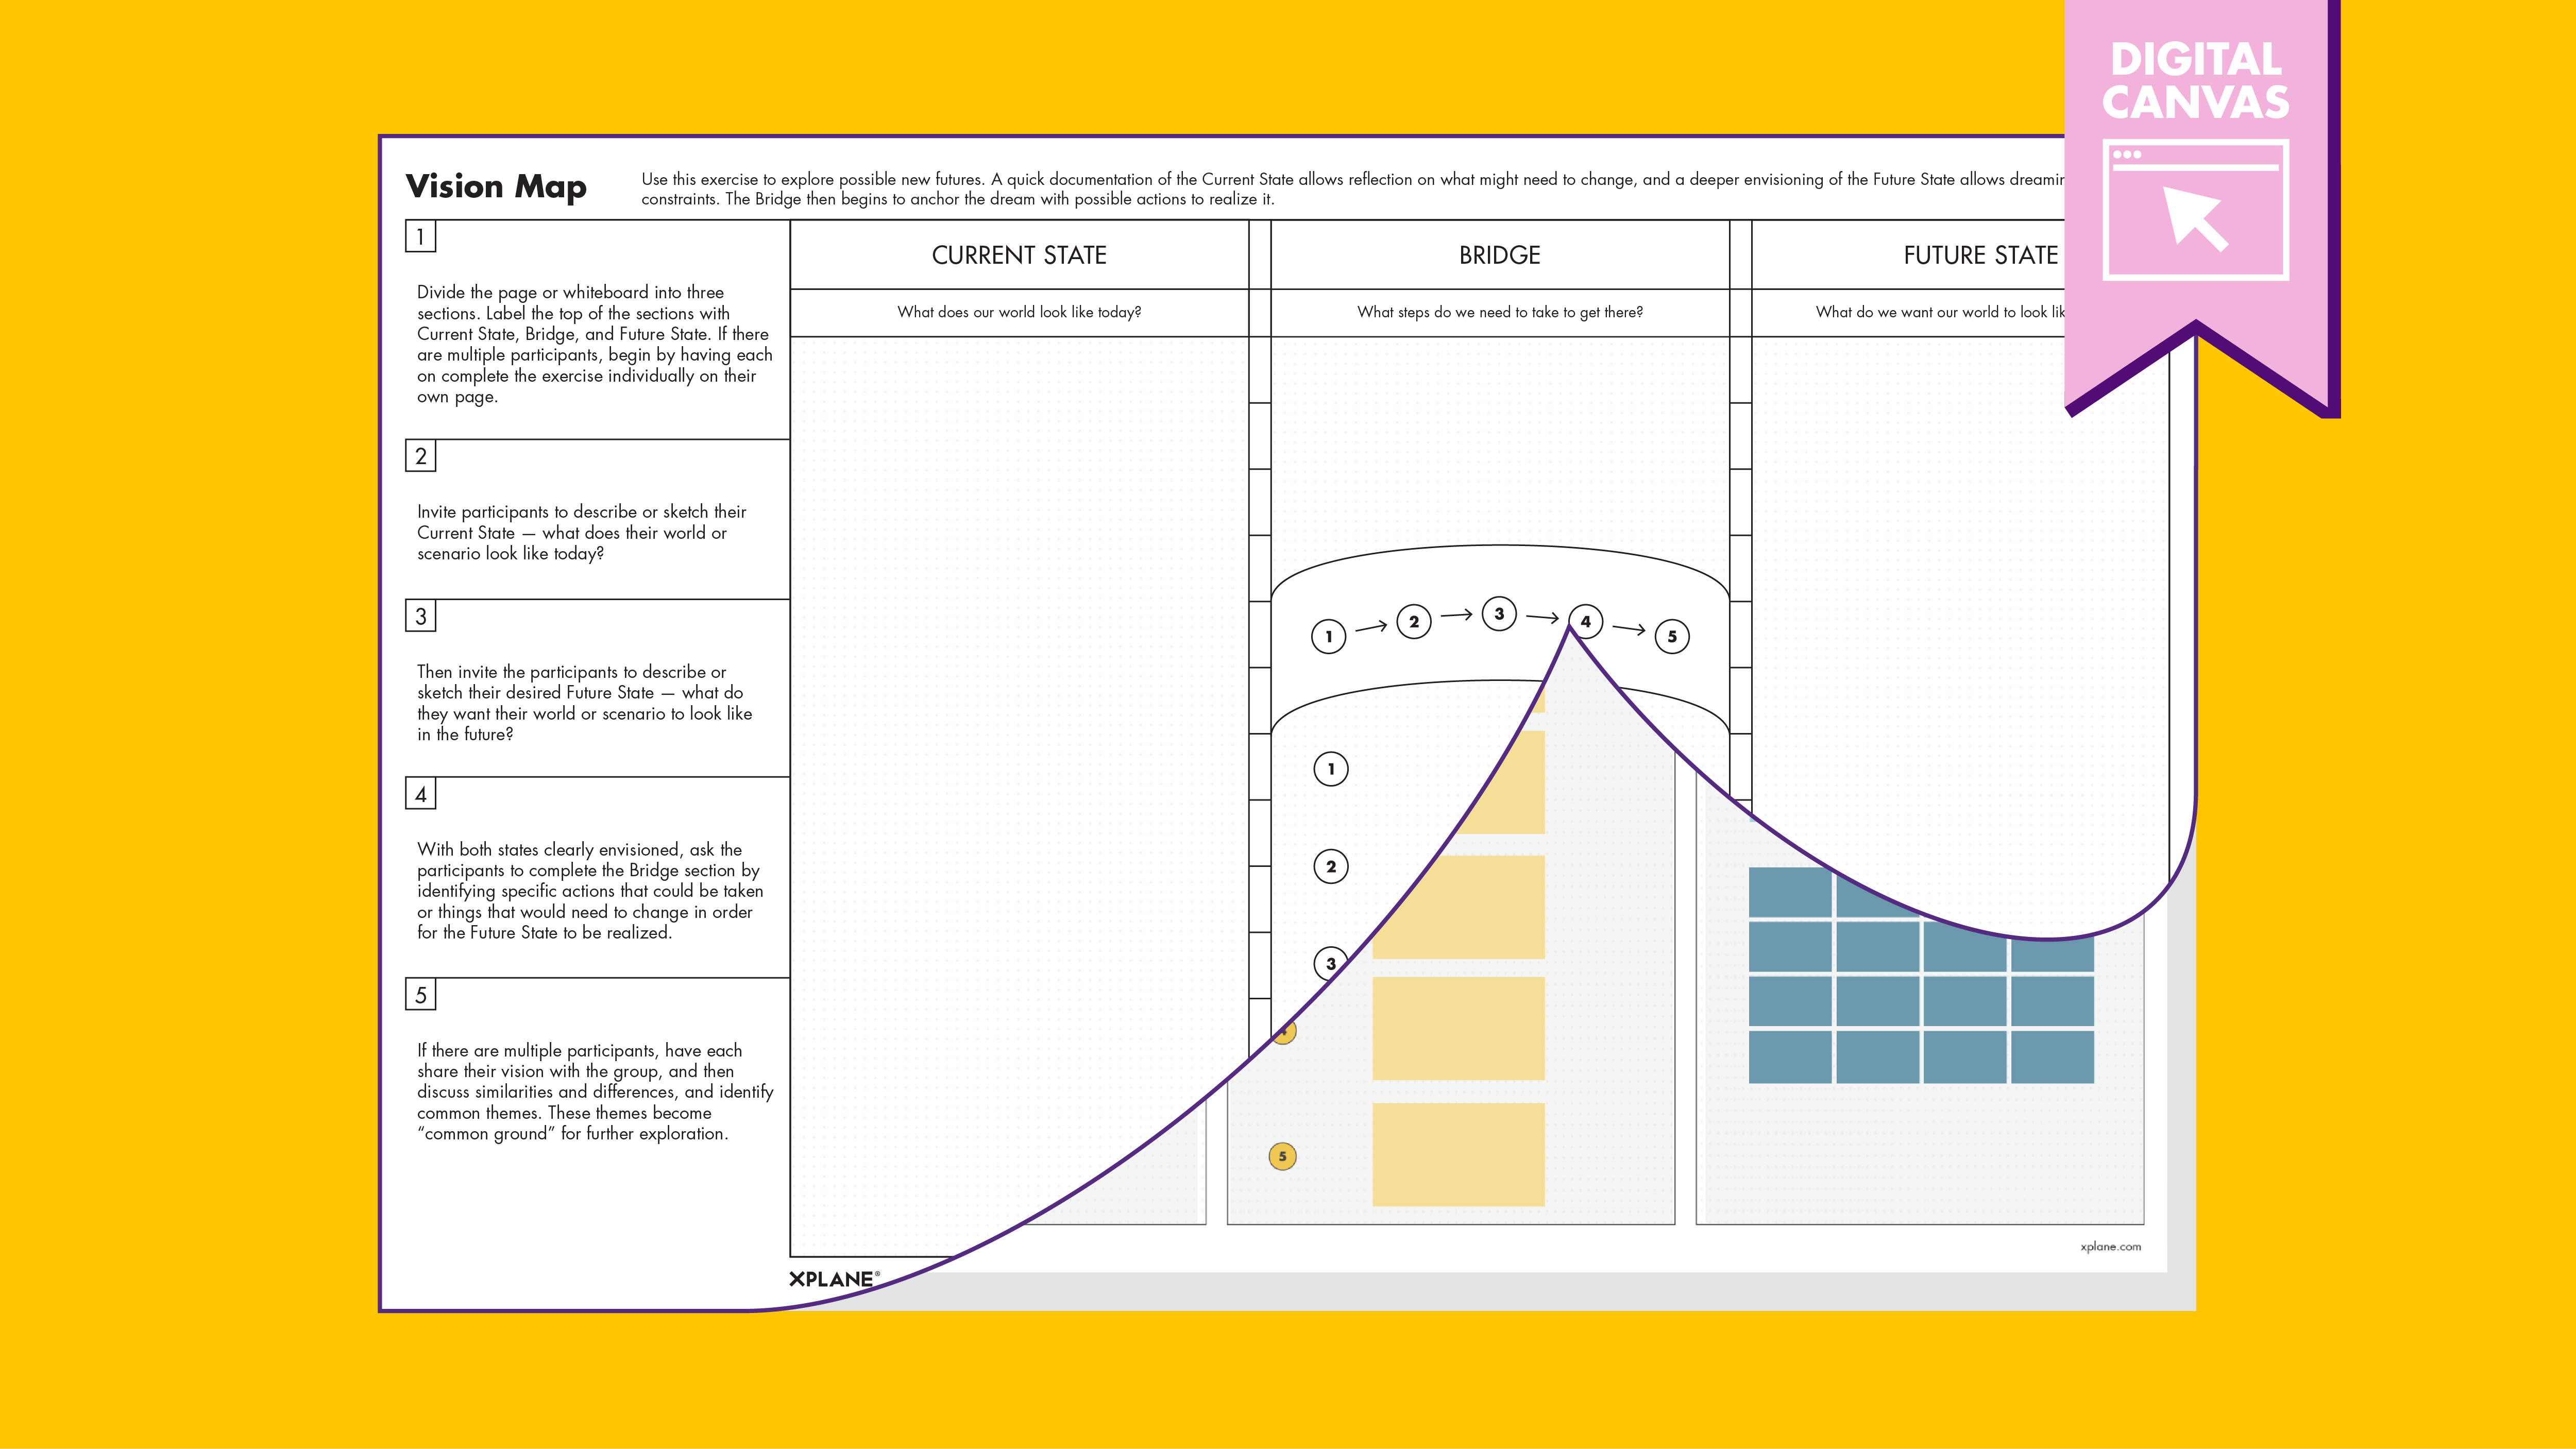 """Vision Map worksheet being peeled back to reveal a digital canvas option. A pink tag with the phrase """"Digital Canvas"""" and an icon of a mouse in a web browser hang over the worksheets. Against yellow background."""